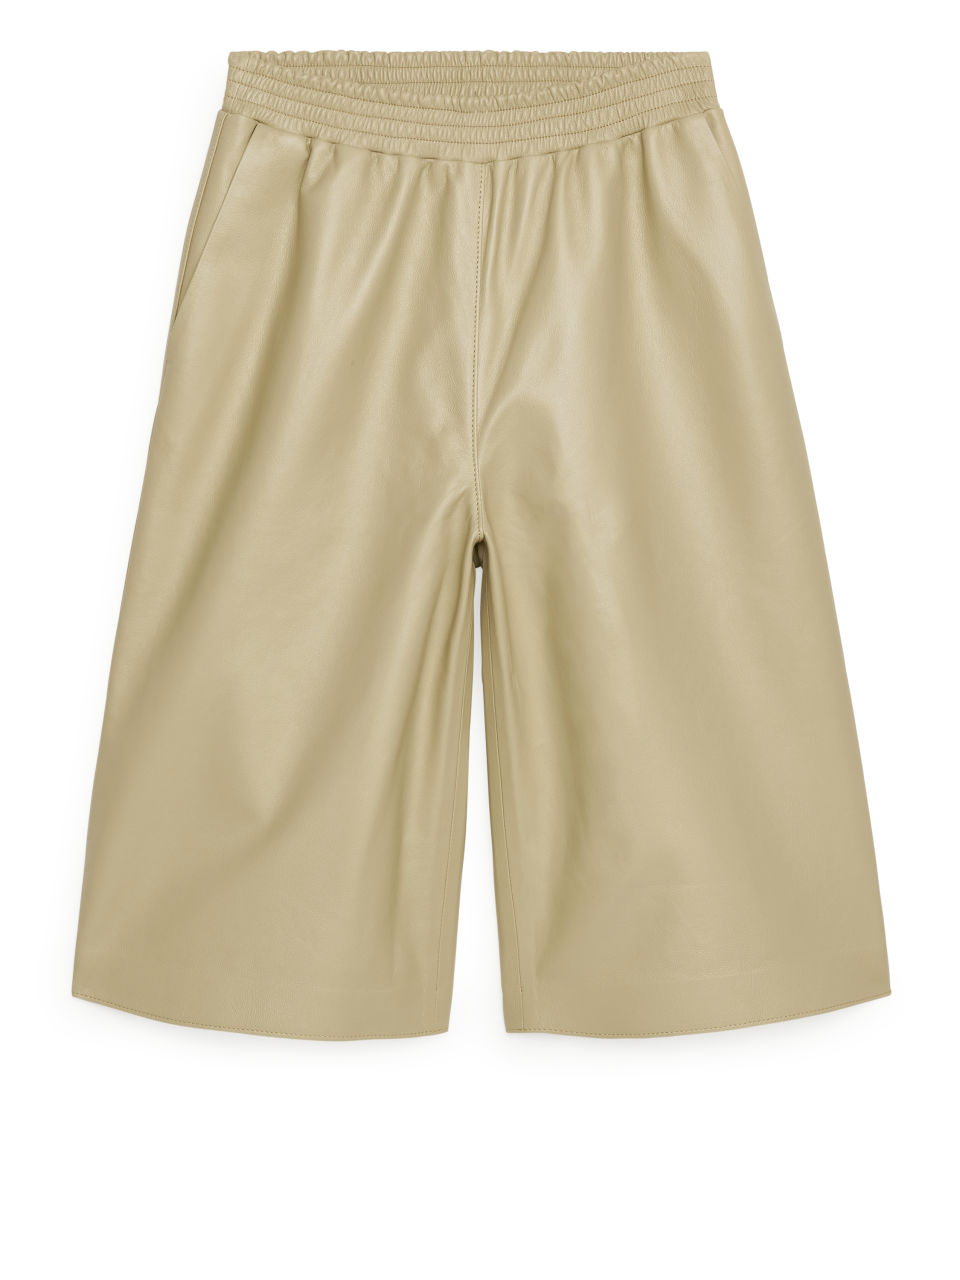 Loose Leather Shorts - Beige